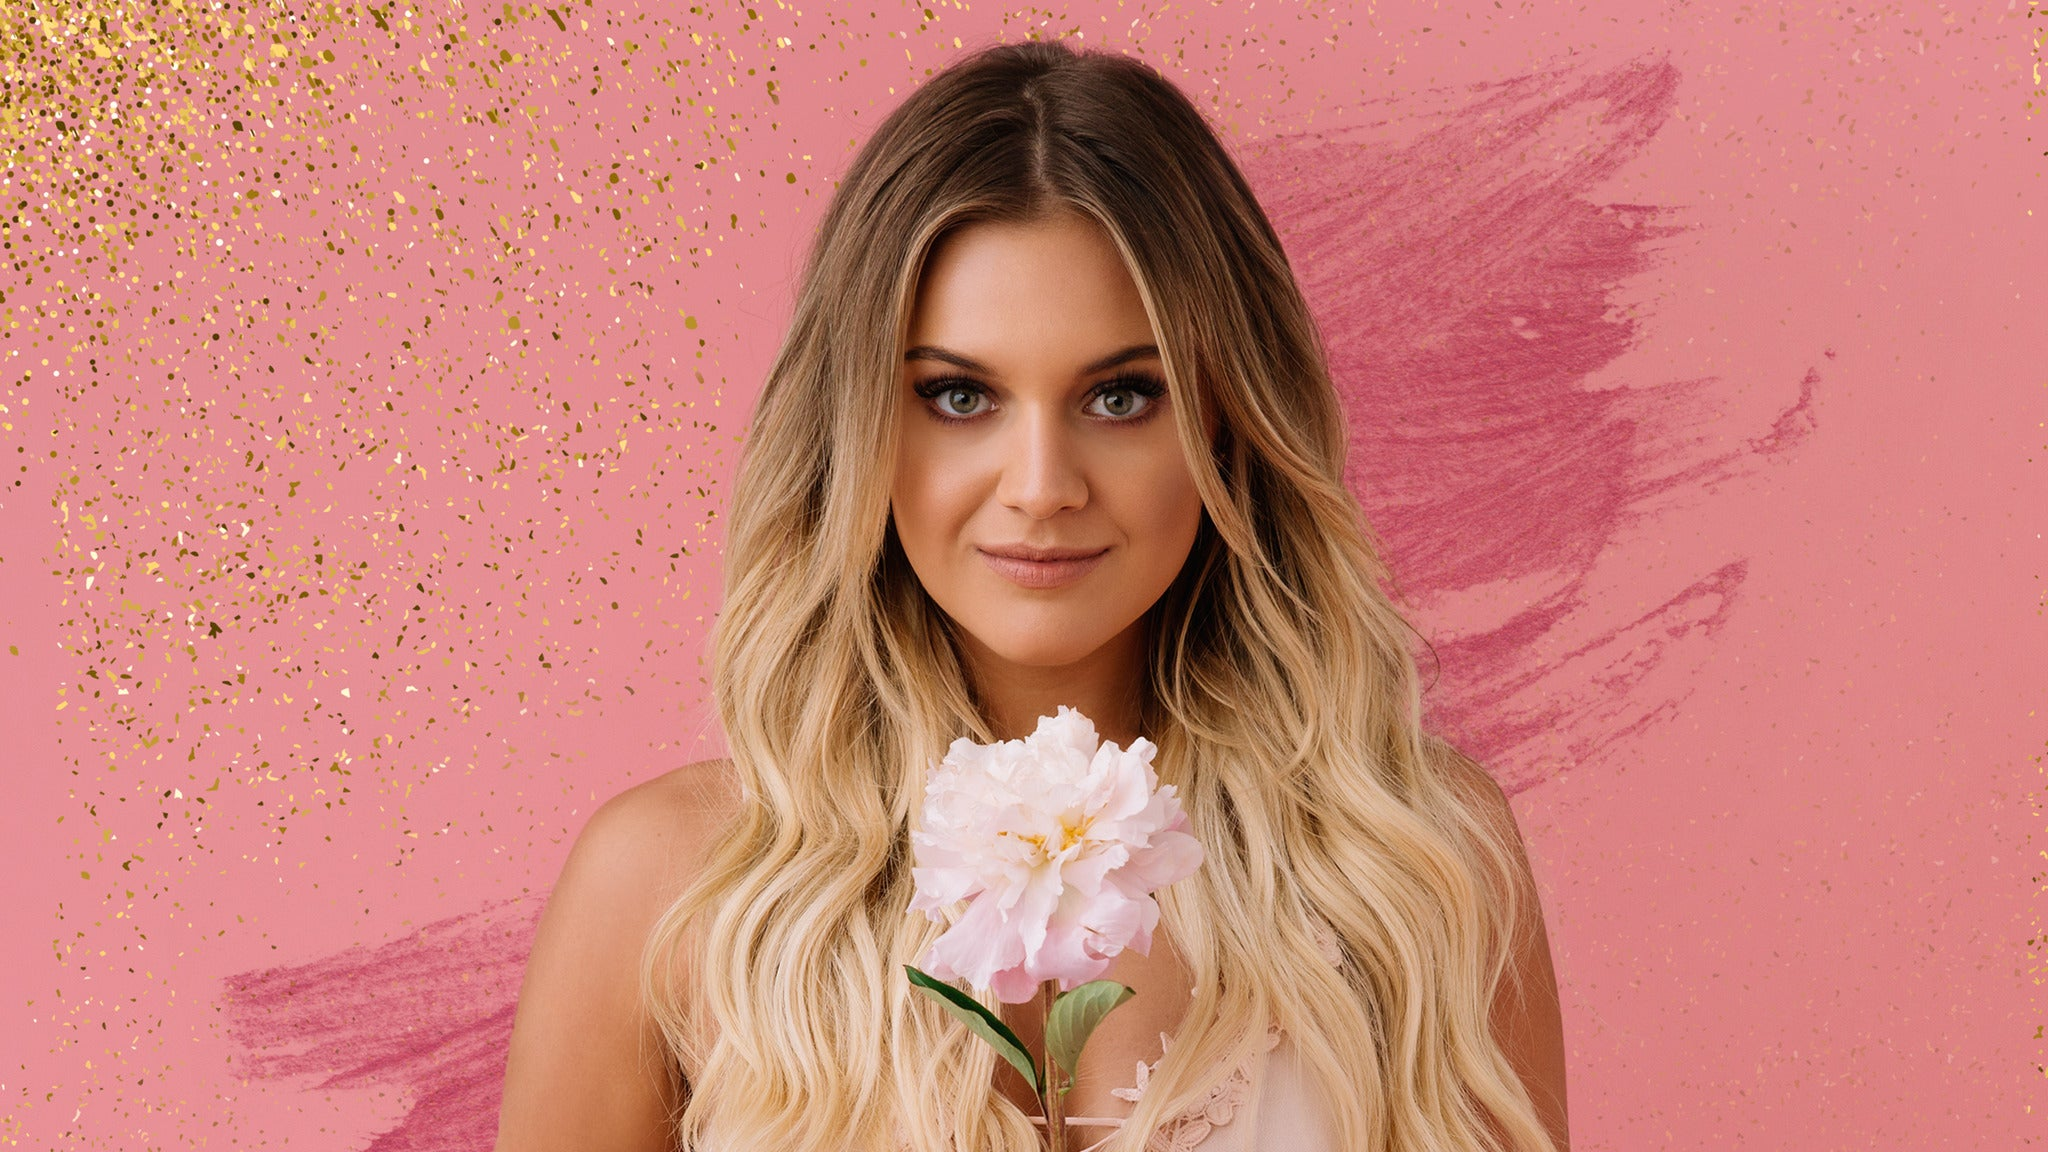 Kelsea Ballerini at Bismarck Event Center